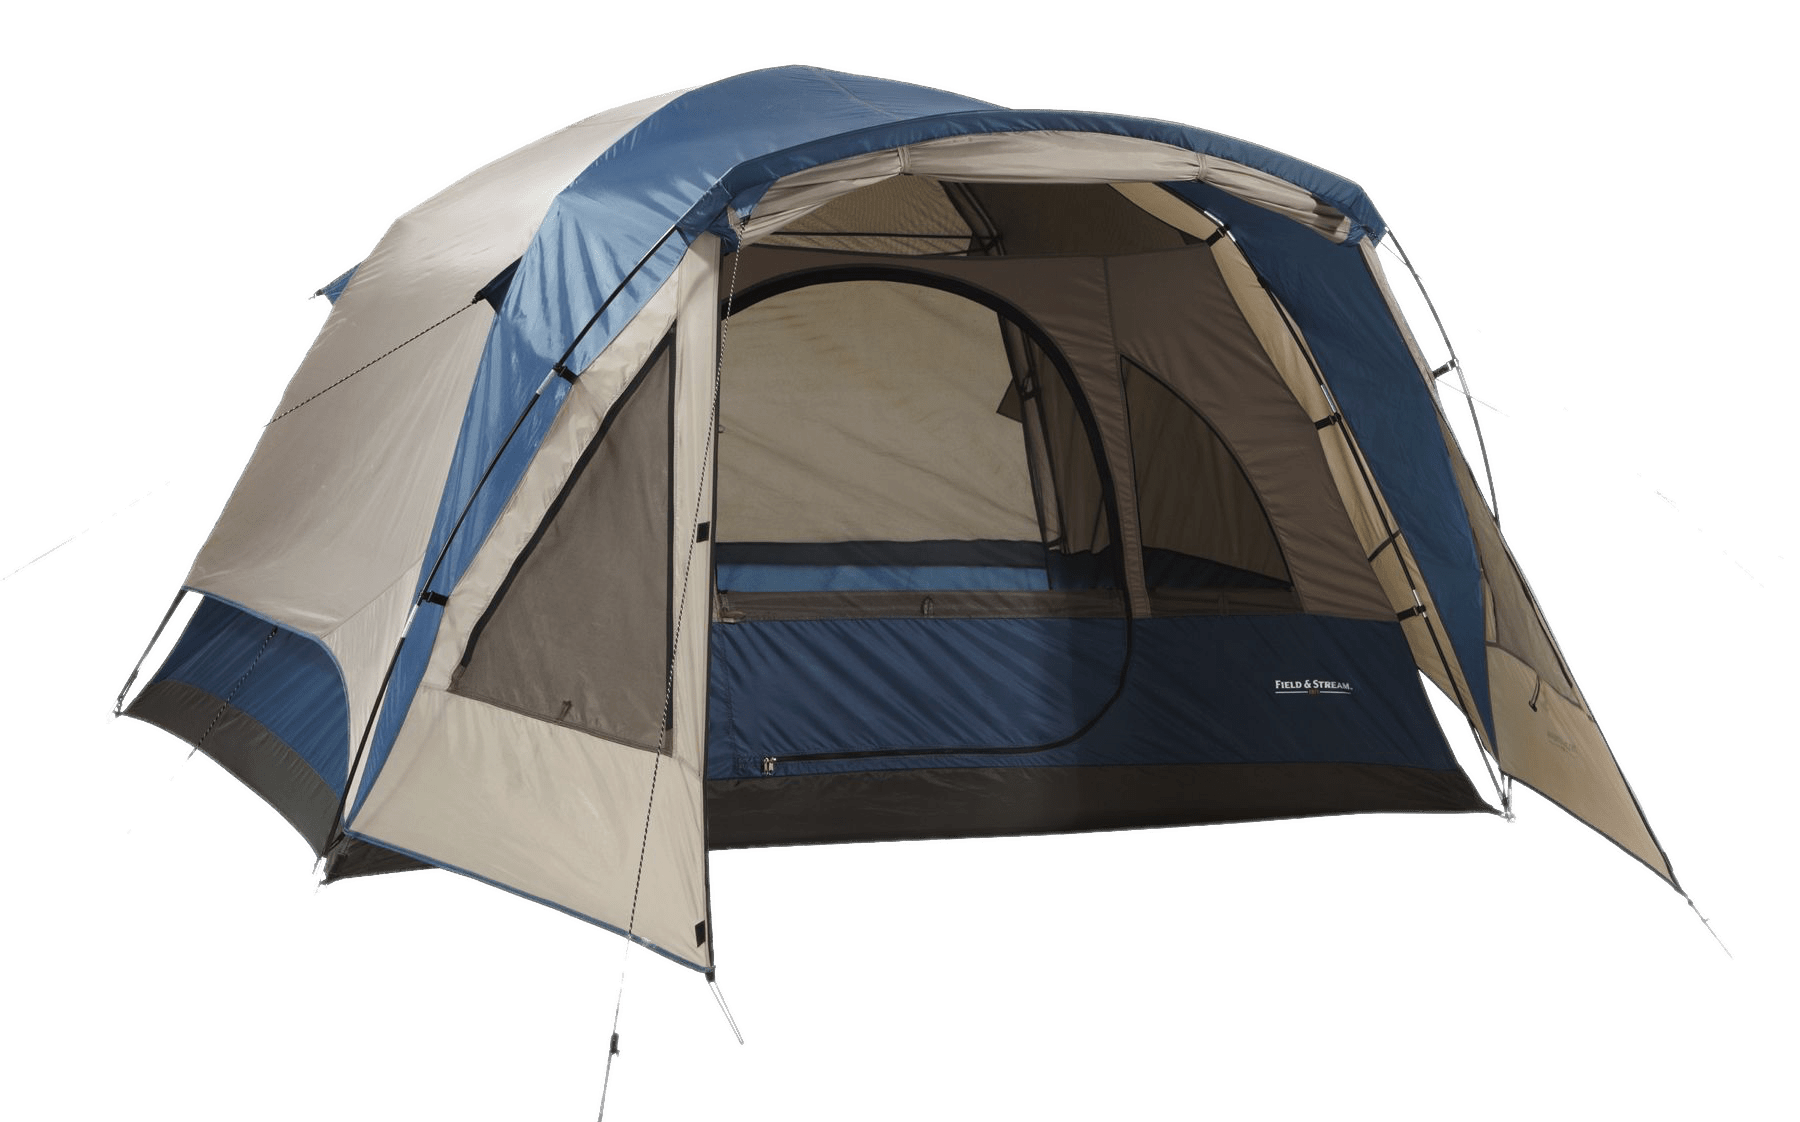 Hiking clipart stream. Dome camping tent transparent